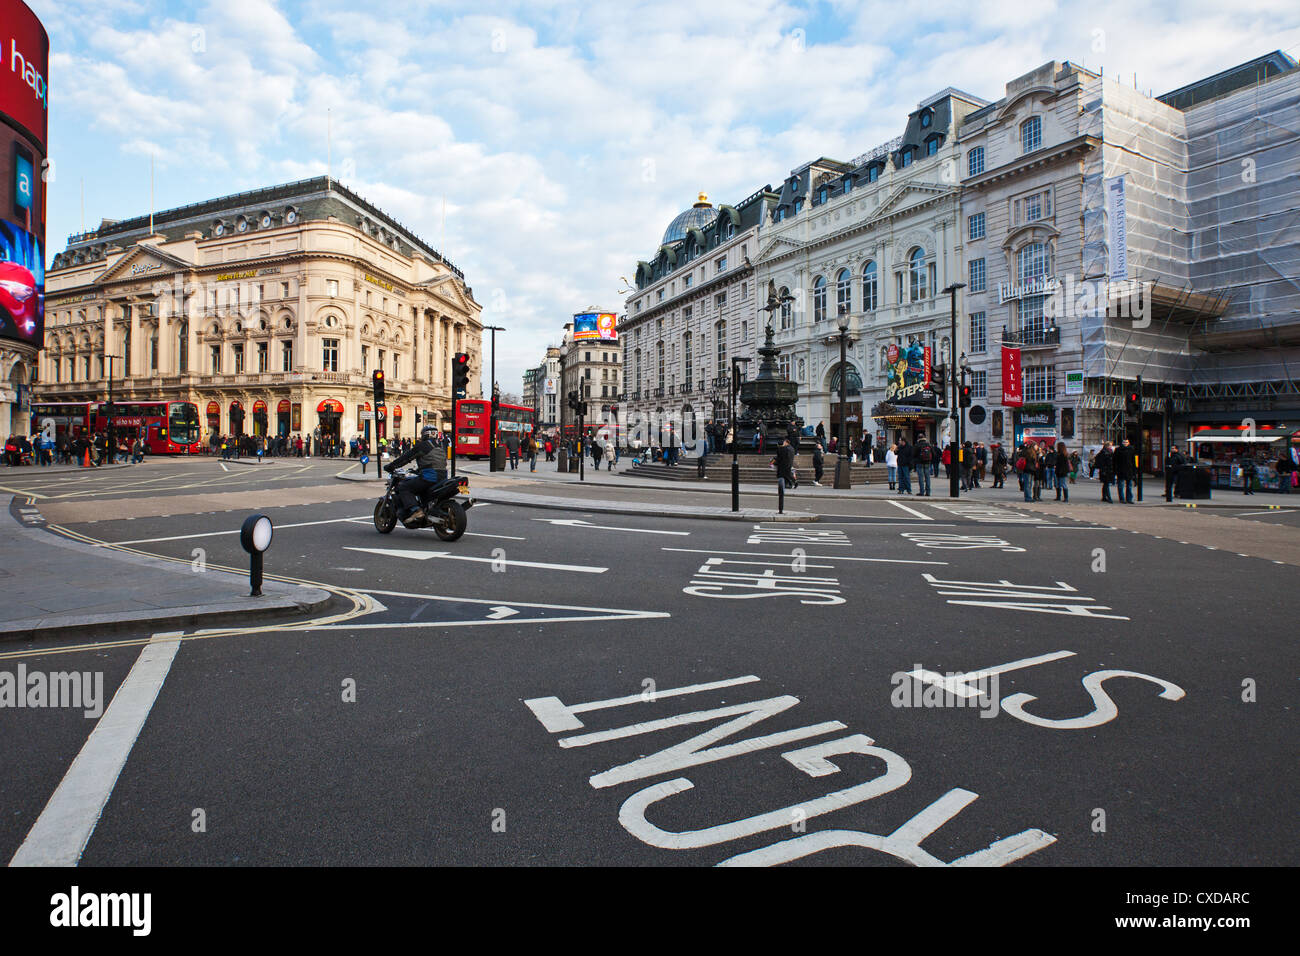 UK, London, people in Piccadilly Circus - Stock Image